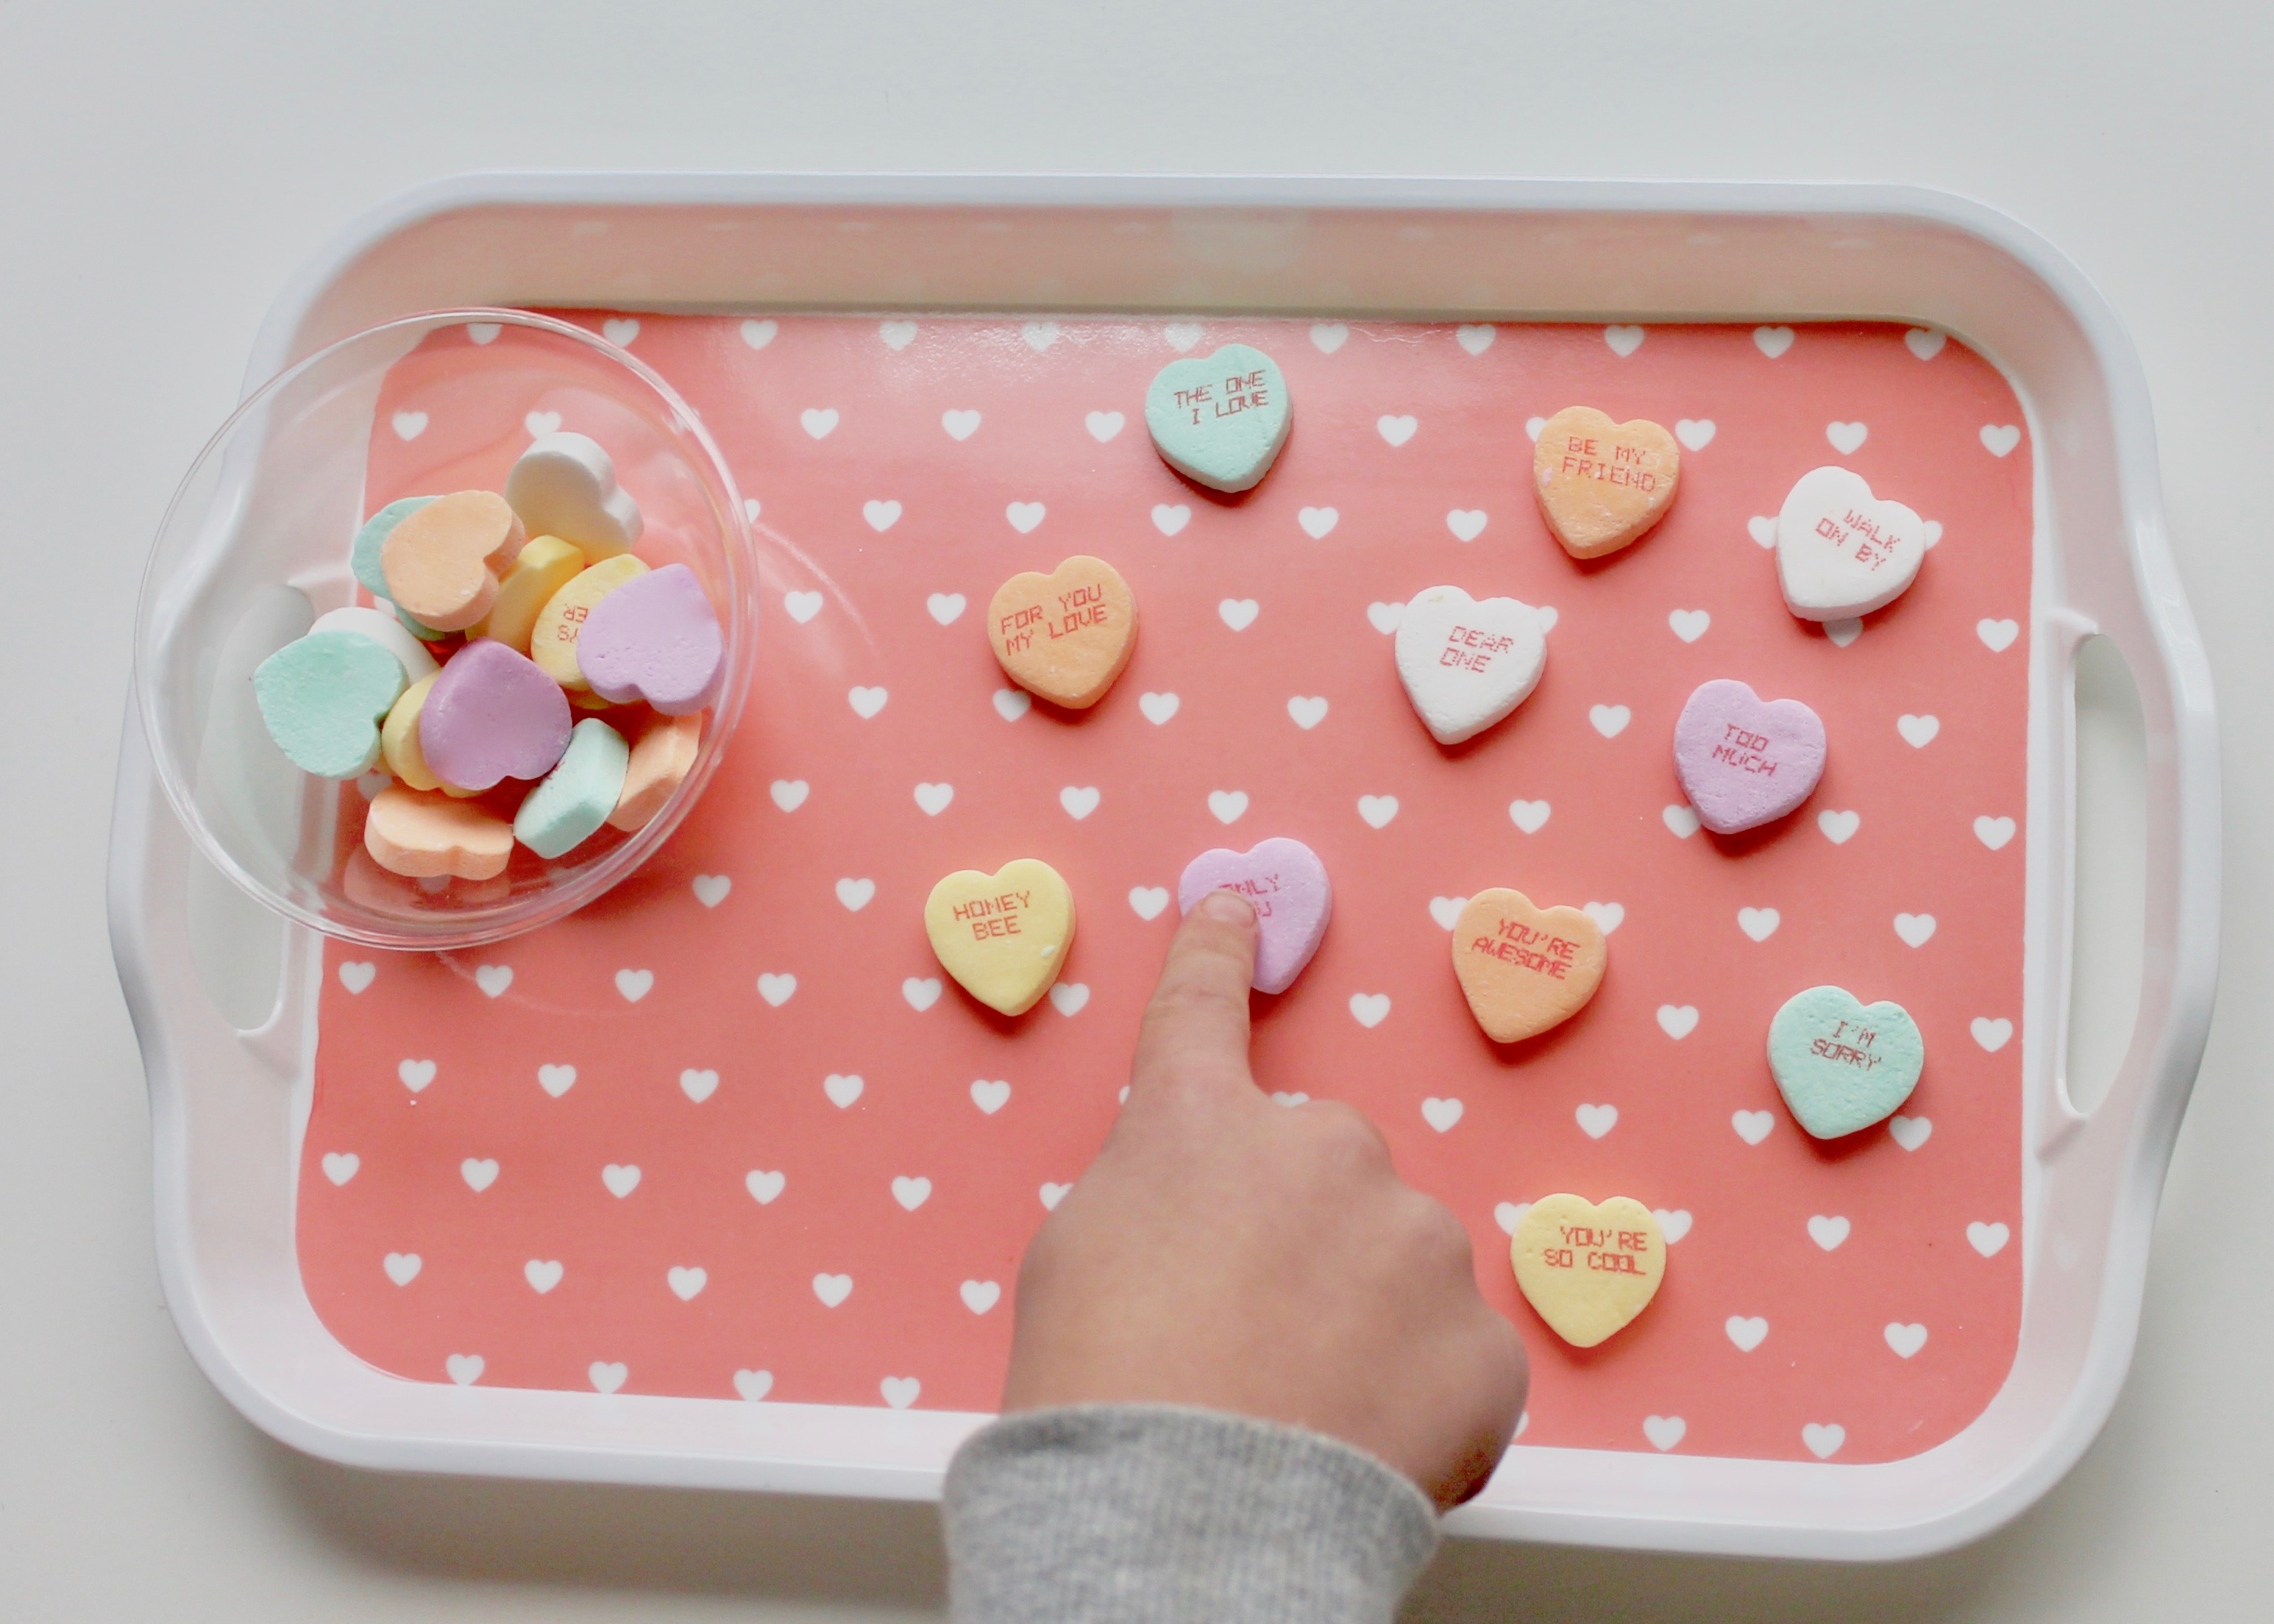 Conversation Hearts | Kids Heart Activities | Easy Activities for Kids | Valentine's Day with Kids | Learning with Conversation Hearts